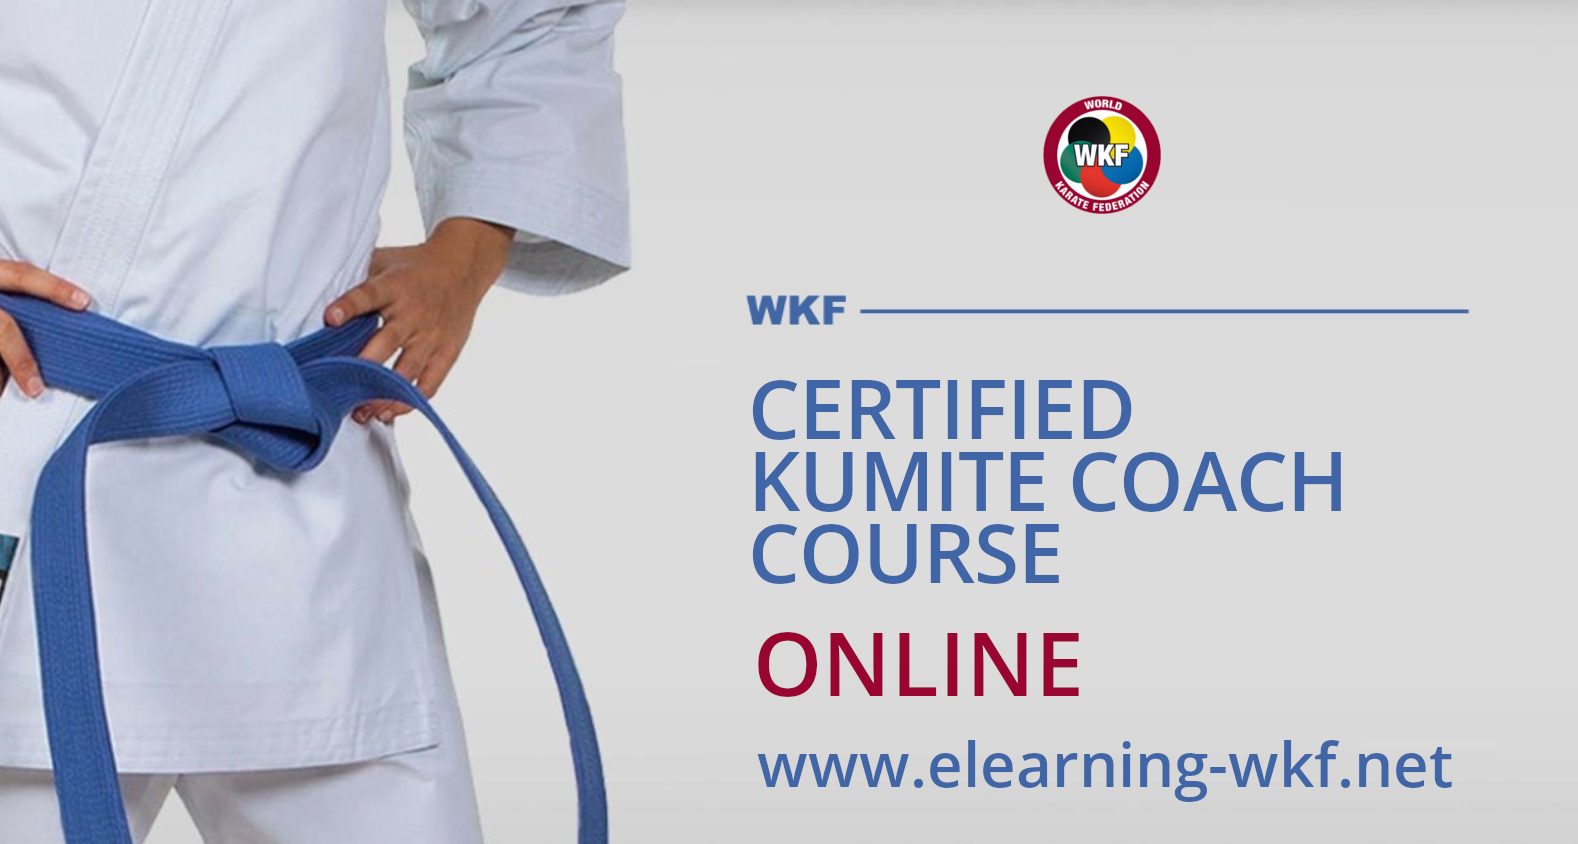 WKF Certified Kumite Coach Course